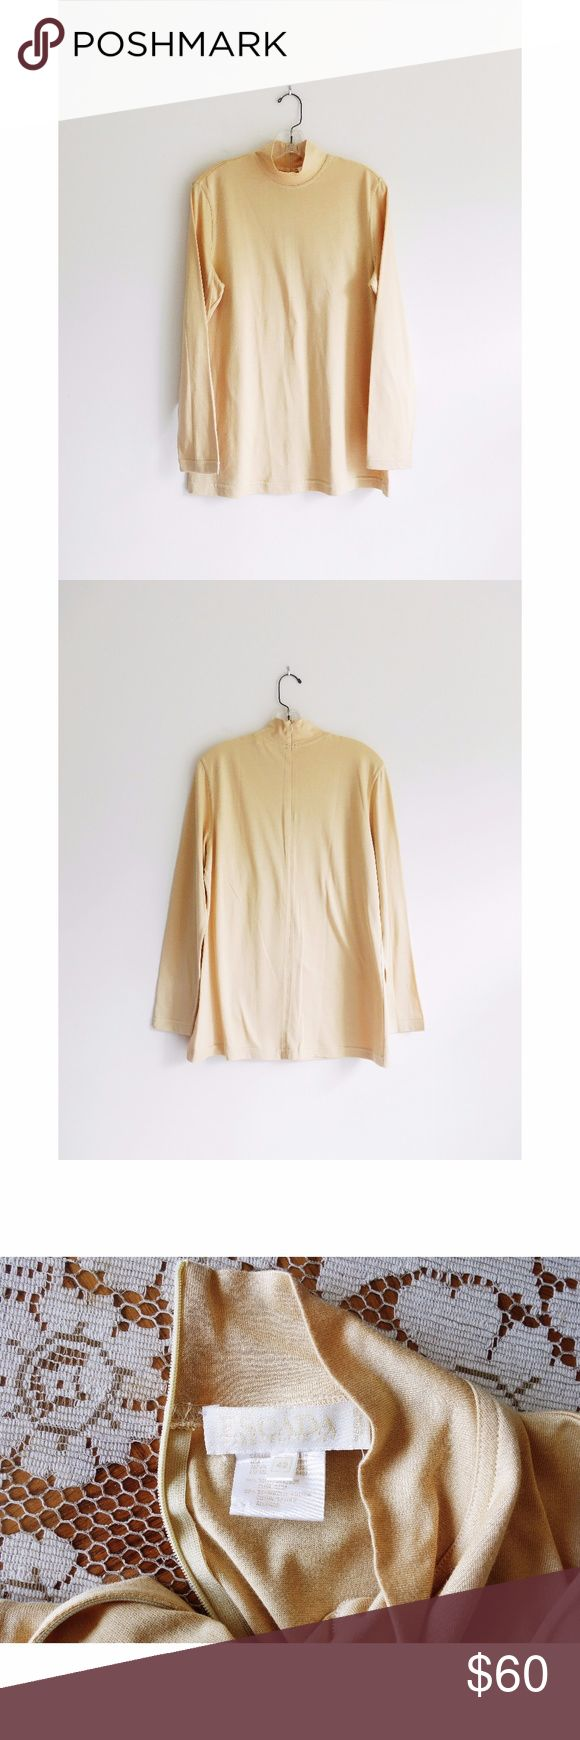 """Vtg Escada Beige Mock Neck Long Sleeve Shirt sz 12 Vintage Escada Margaretha Ley Beige Zip Up Mock Neck Long Sleeve Shirt size DE 42 US 12, excellent vintage condition--only imperfection is a very thin run or fabric defect on right shoulder--see pic 4, made in Italy, long sleeves, high mock neck, hidden quarter zip up back, jersey knit fabric in a nude/beige, 50% silk, 50% cotton, 16"""" across shoulders, 21"""" pit to pit, 29"""" shoulder to hem, 24.5"""" sleeve Escada Tops Tees - Long Sleeve"""